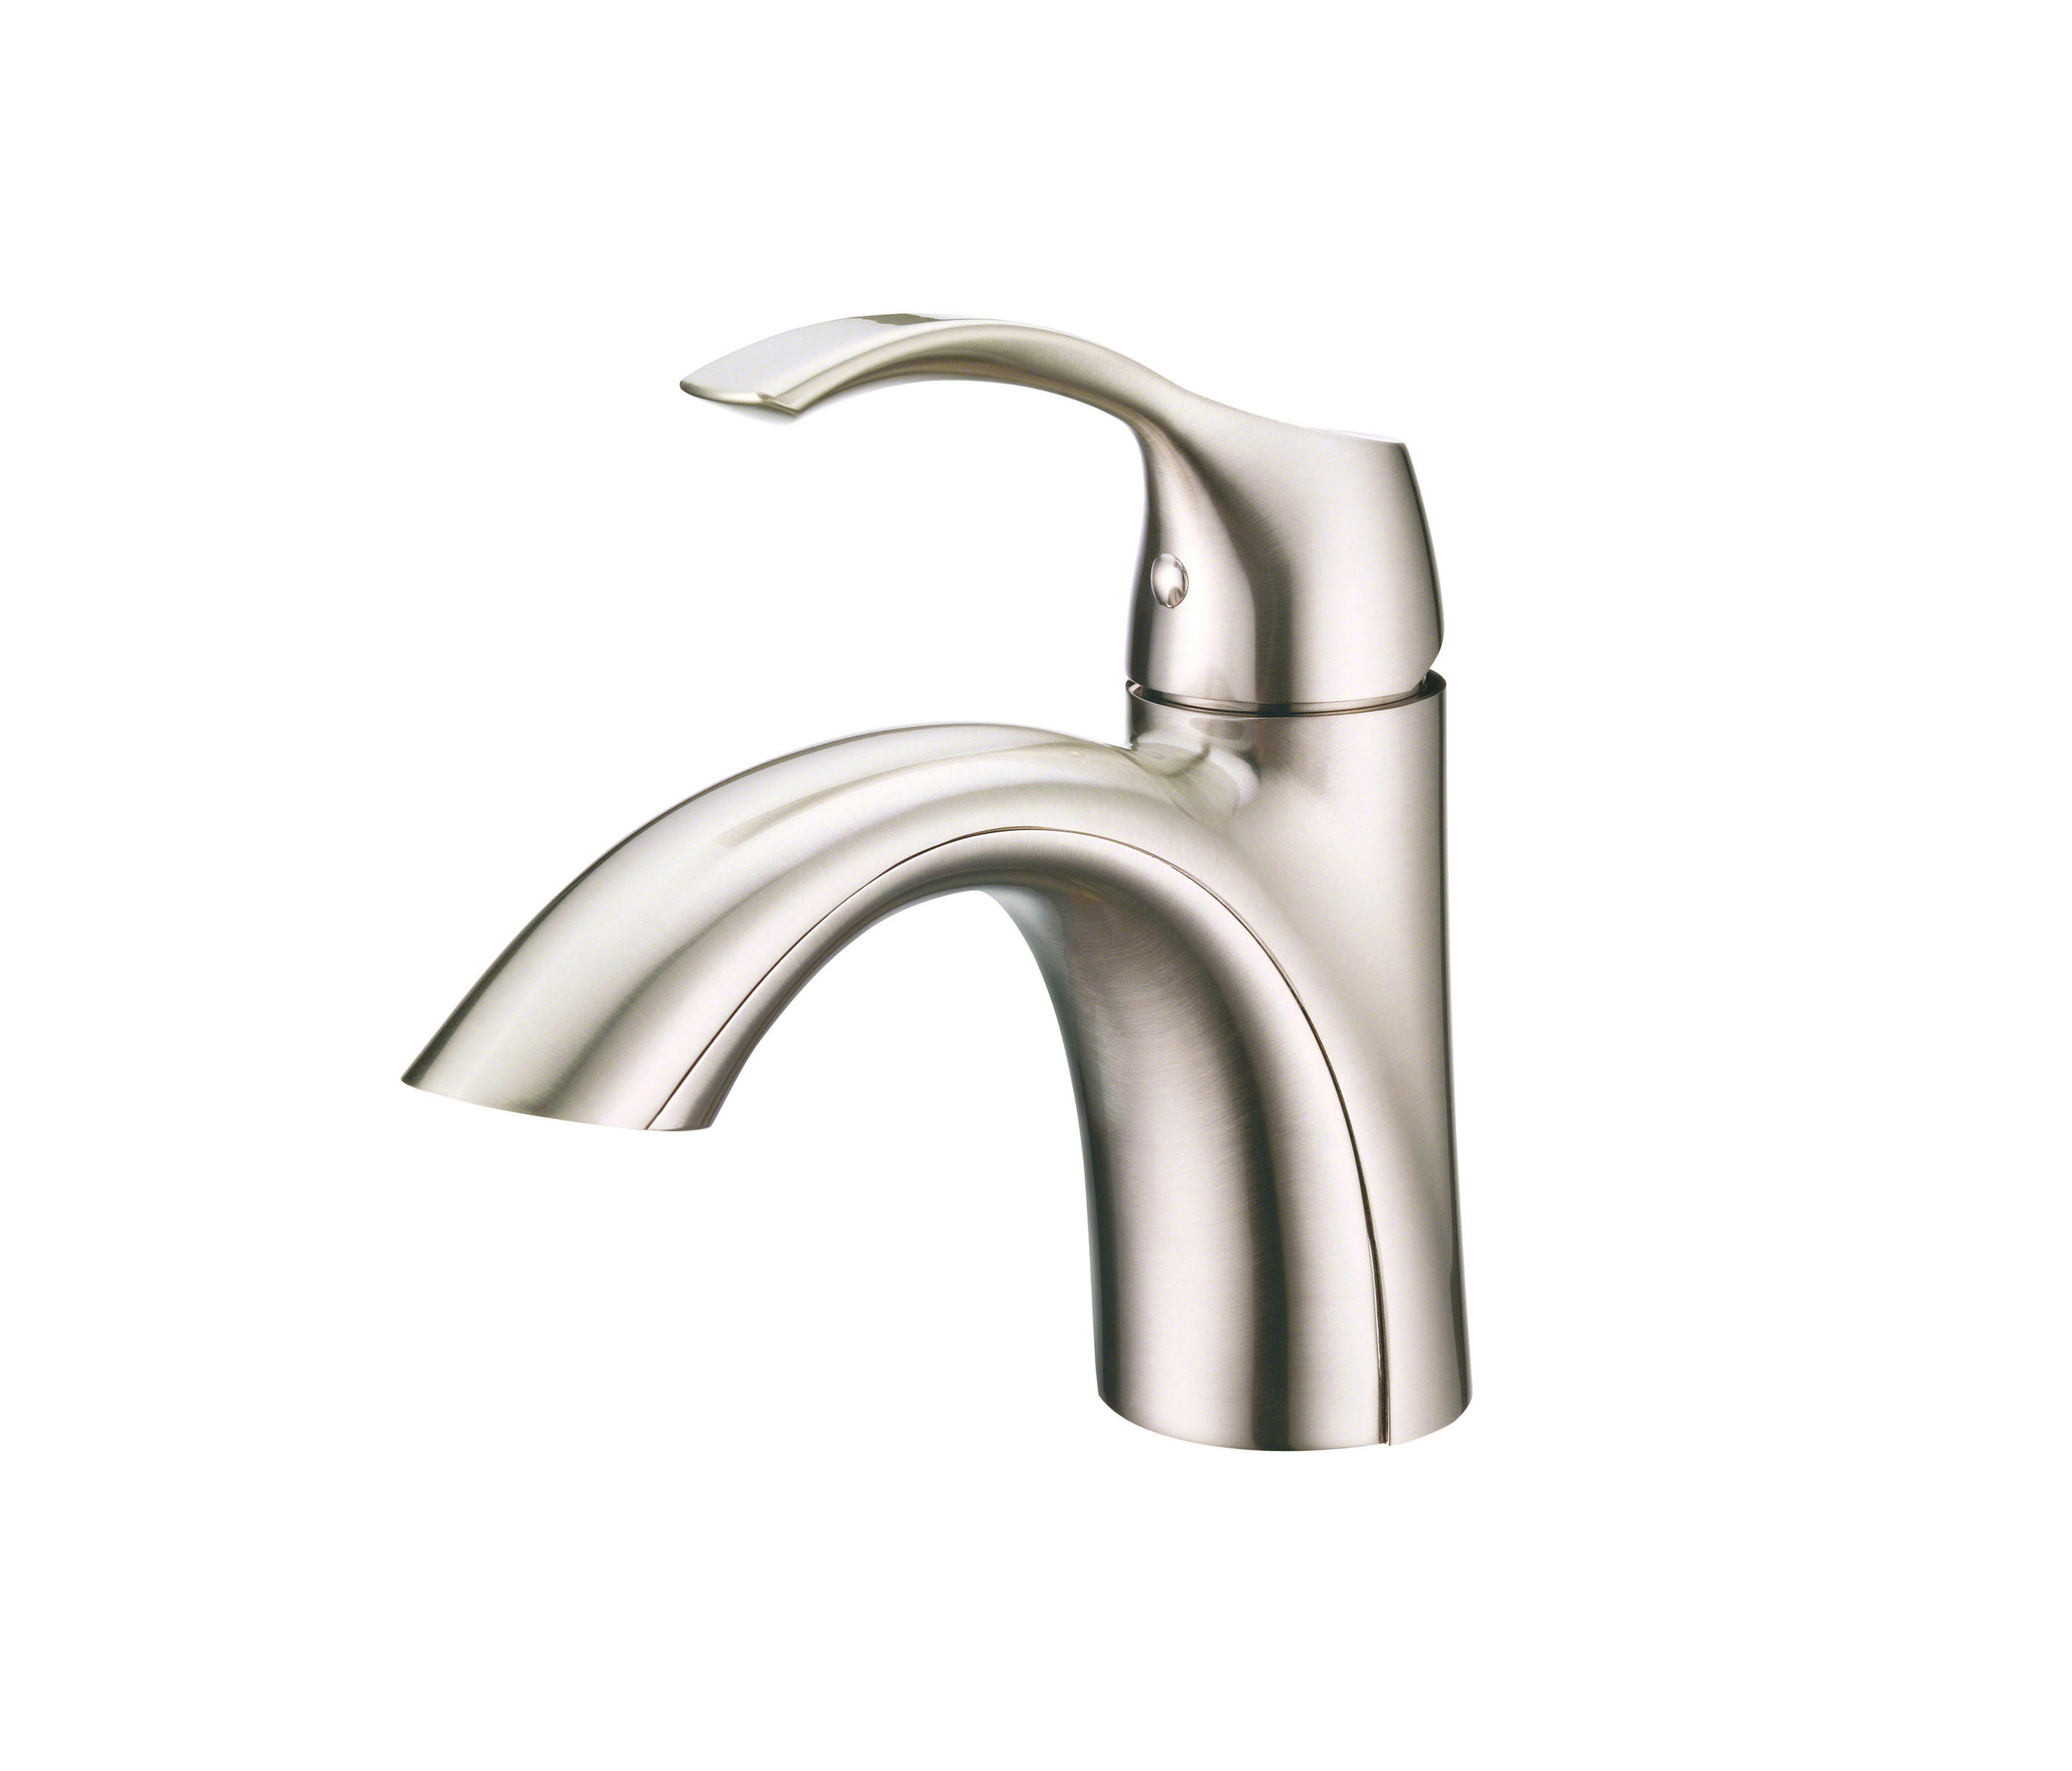 ANTIOCH® | SINGLE HANDLE LAVATORY FAUCET, 1.2GPM - Wash-basin taps ...